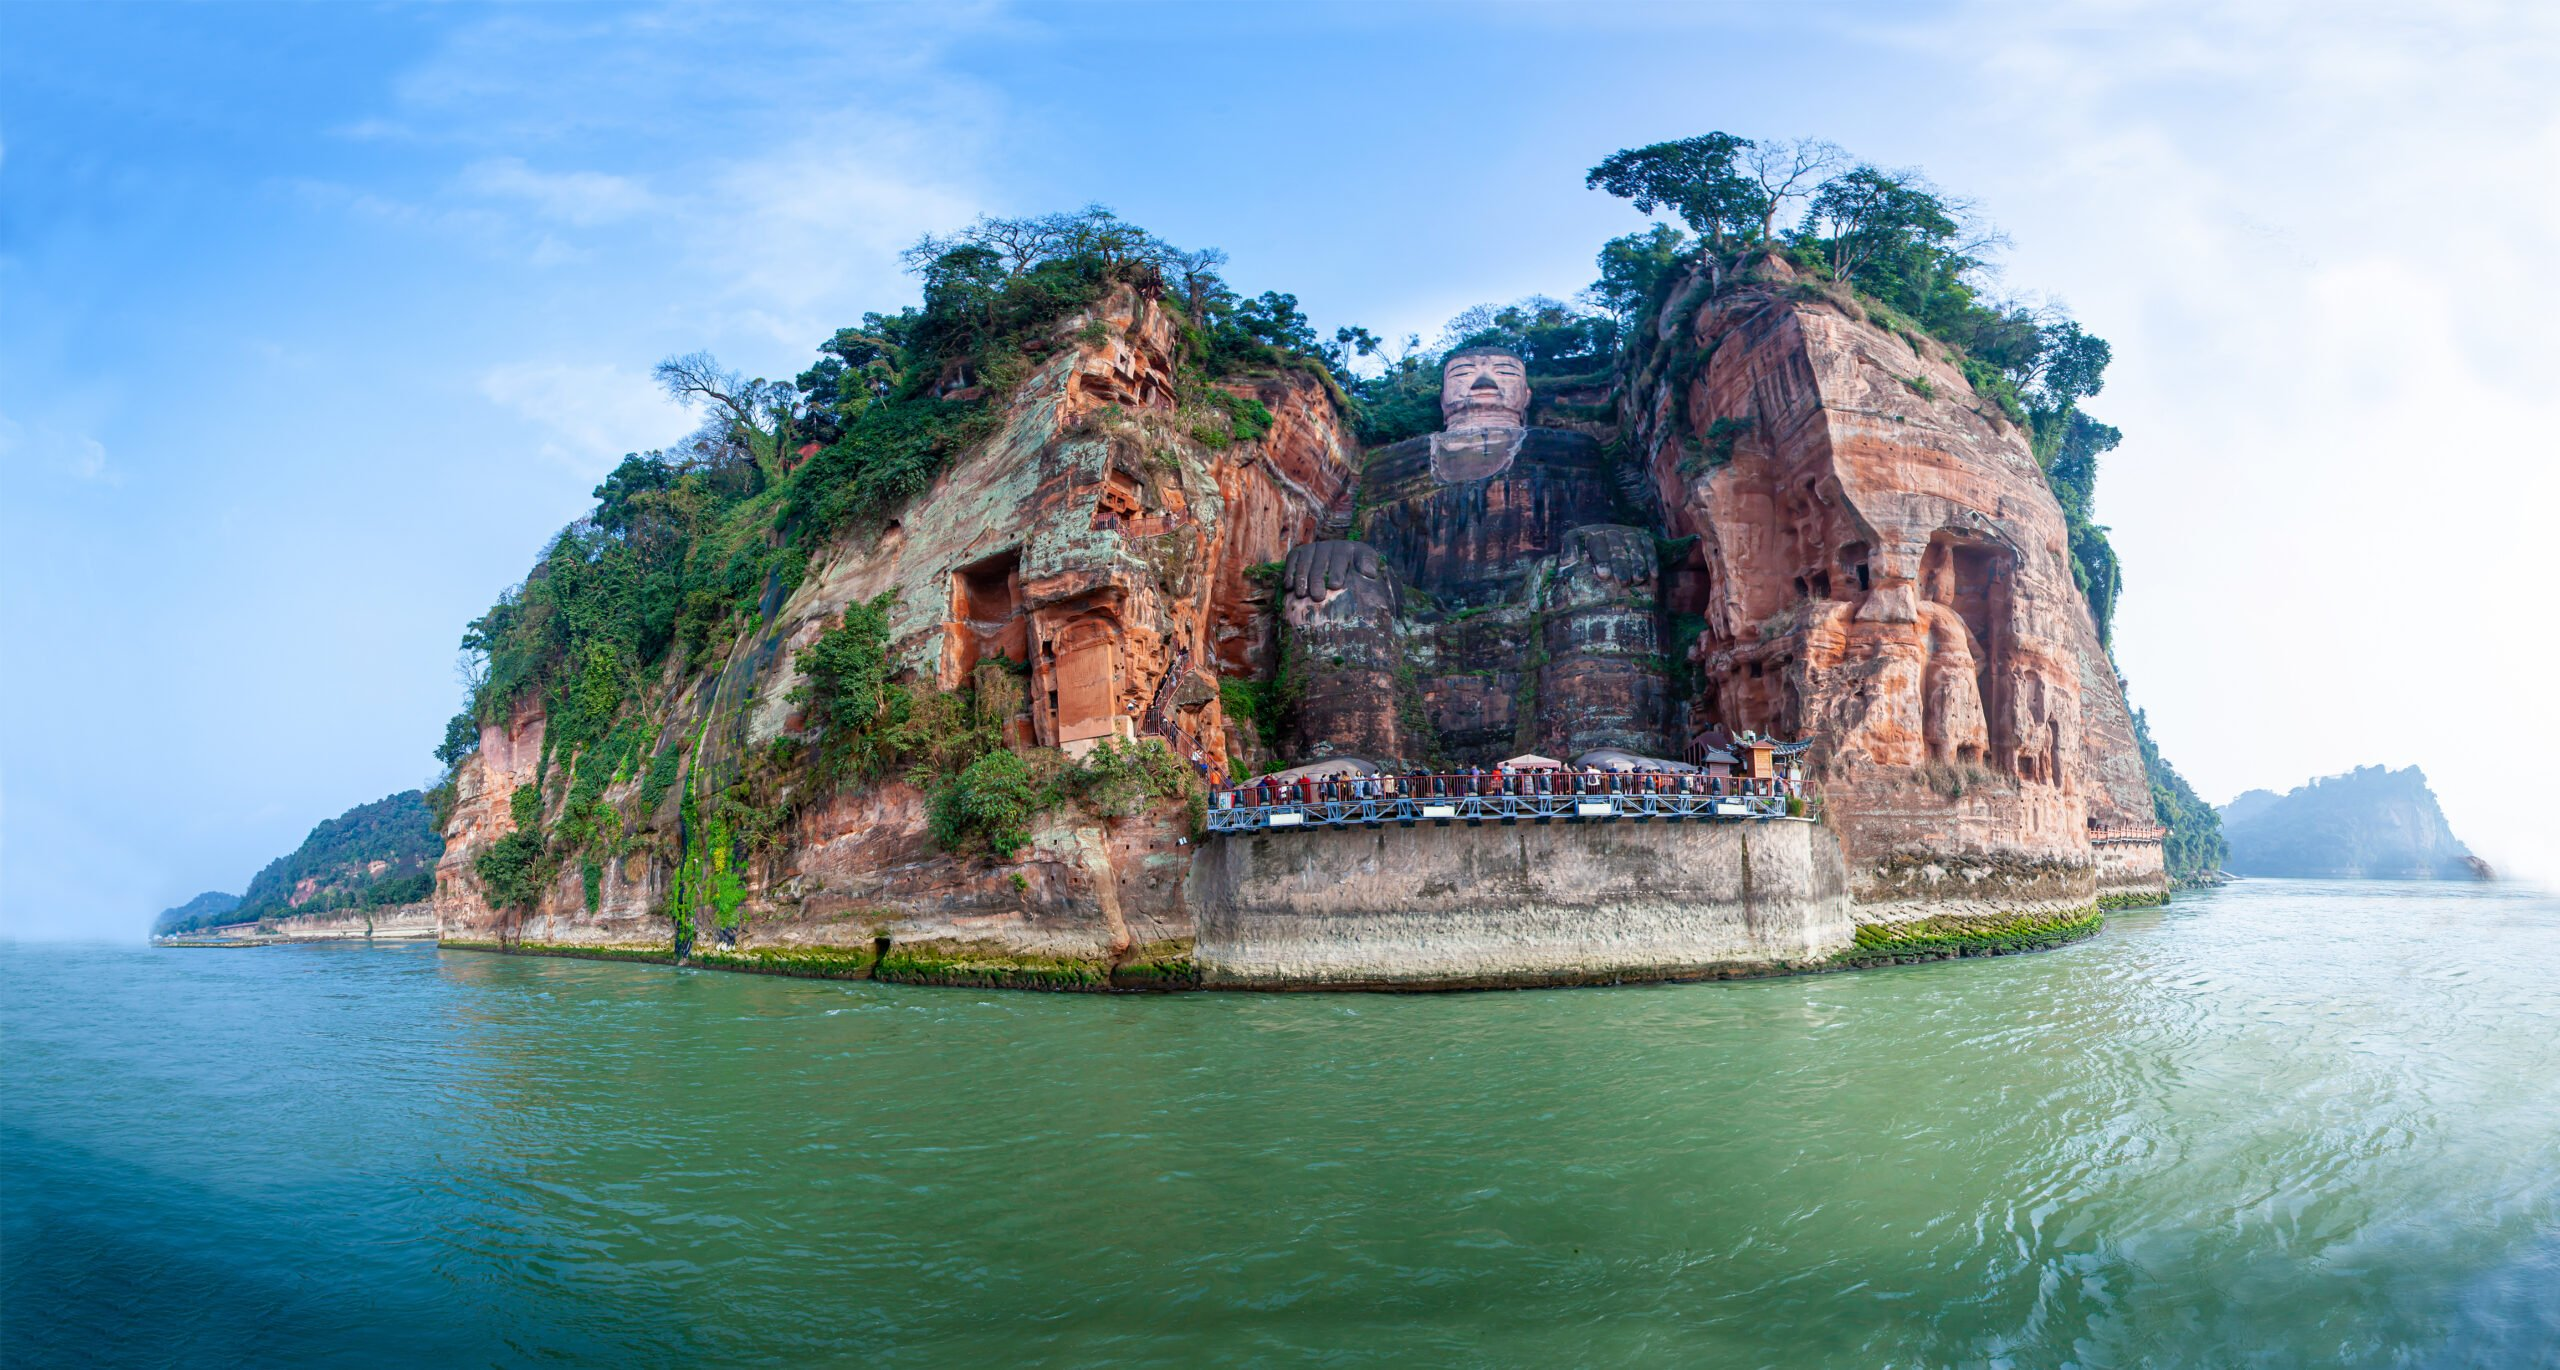 Discover Leshan In Our Leshan Giant Buddha And Luocheng Ancient Town Private Tour